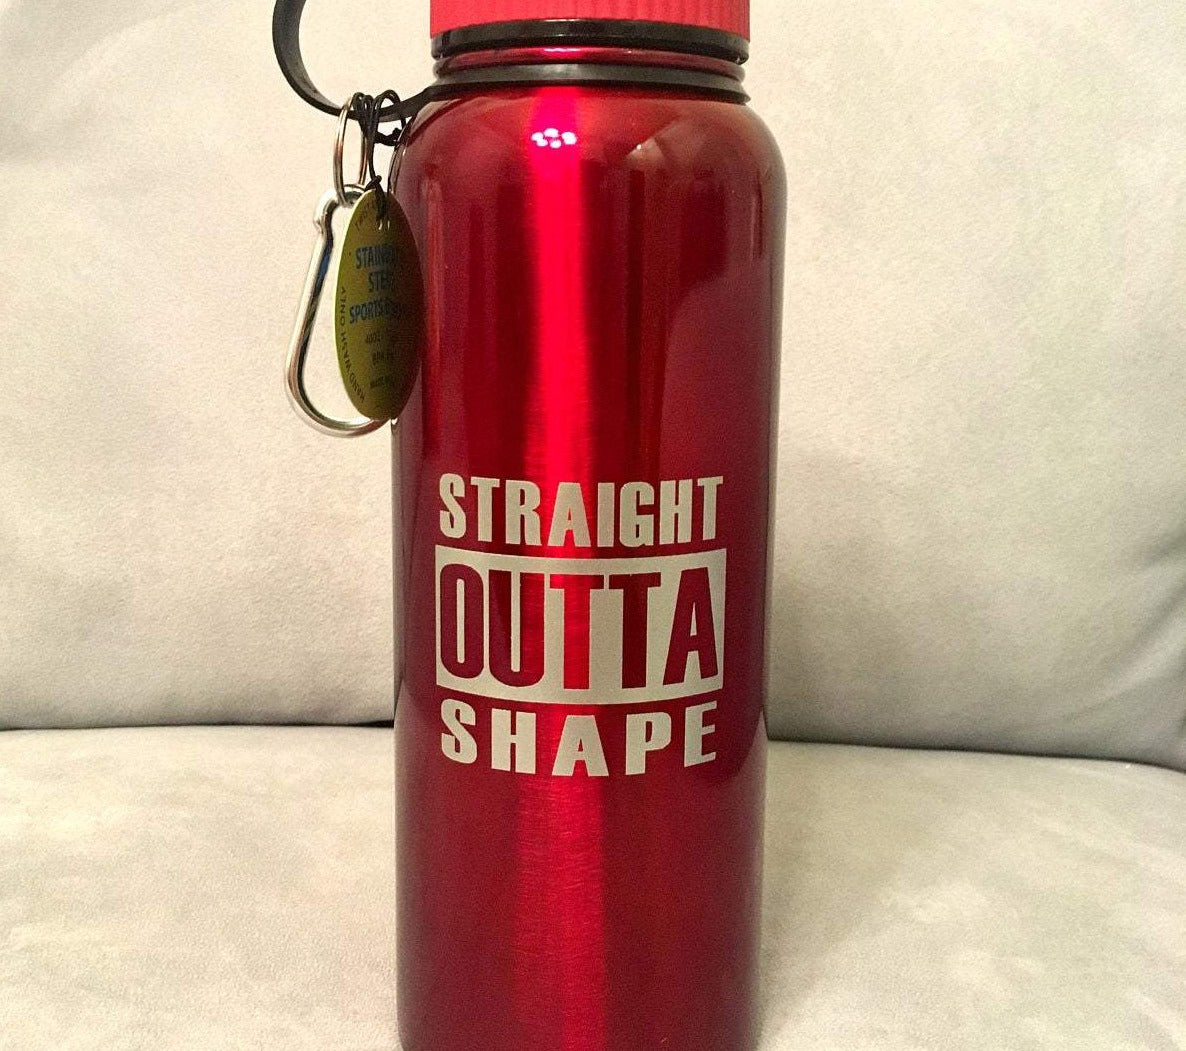 Straight Outta Shape Water Bottle SVG, SVG File for Water Bottle, Yeti, or other Tumbler, Funny Water Bottle SVG, Water Bottle Decal, Cricut